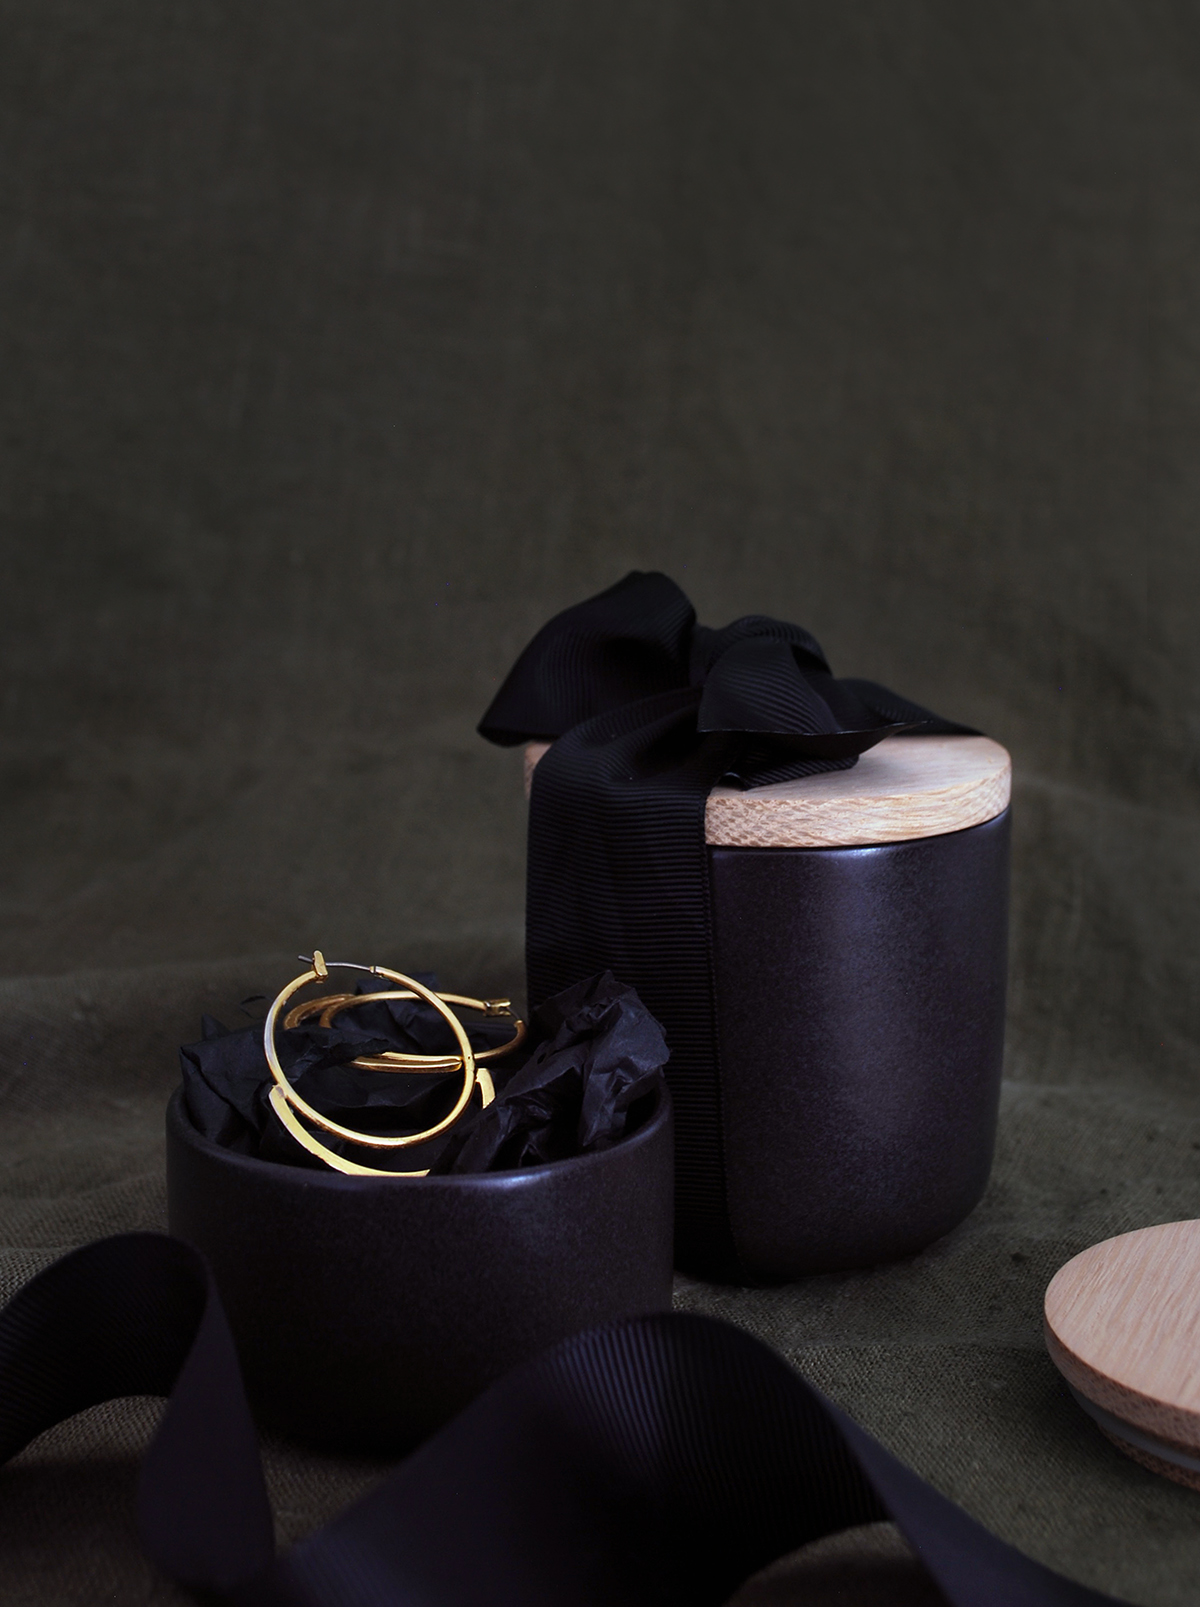 Simple ideas for extraordinary gift wrapping. Matte black kitchen cansiters look amazing tied with thick black ribbon.